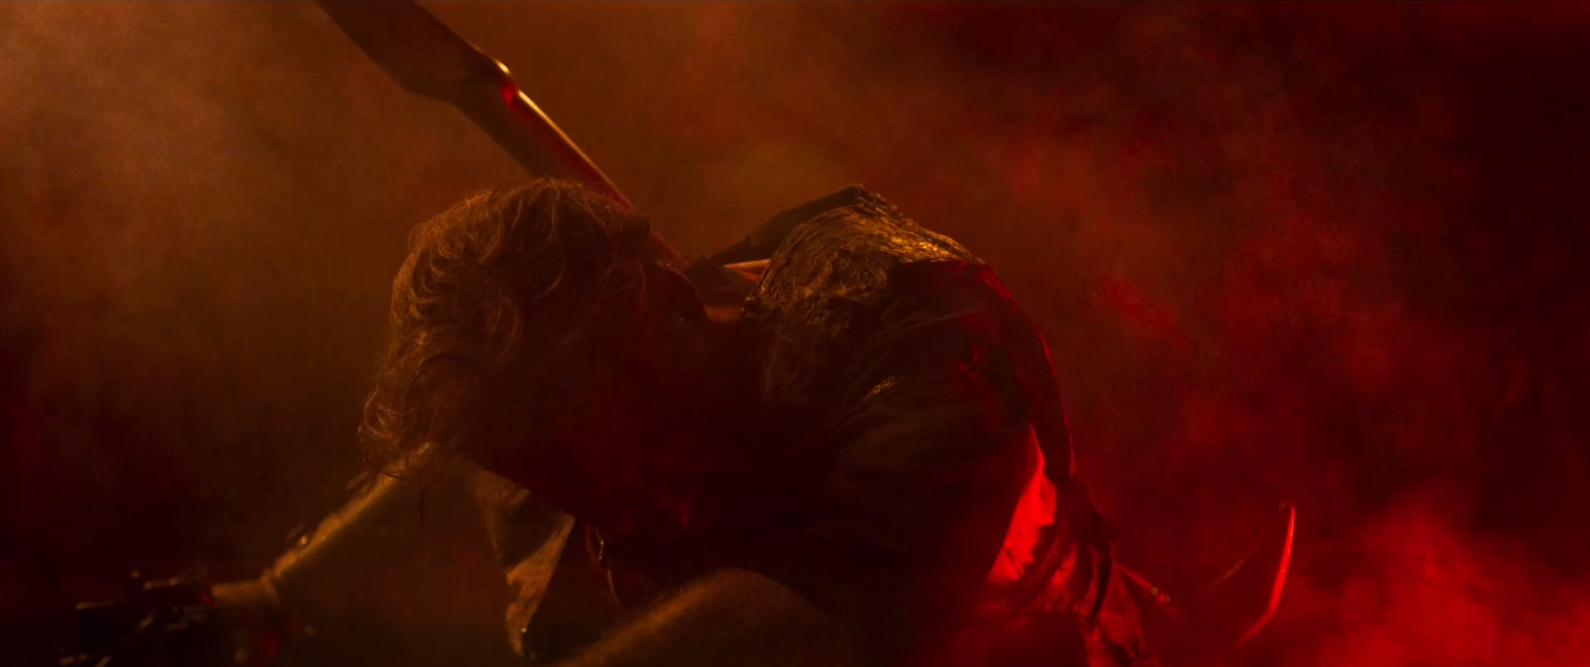 Mandy (2018) | SpectreVision